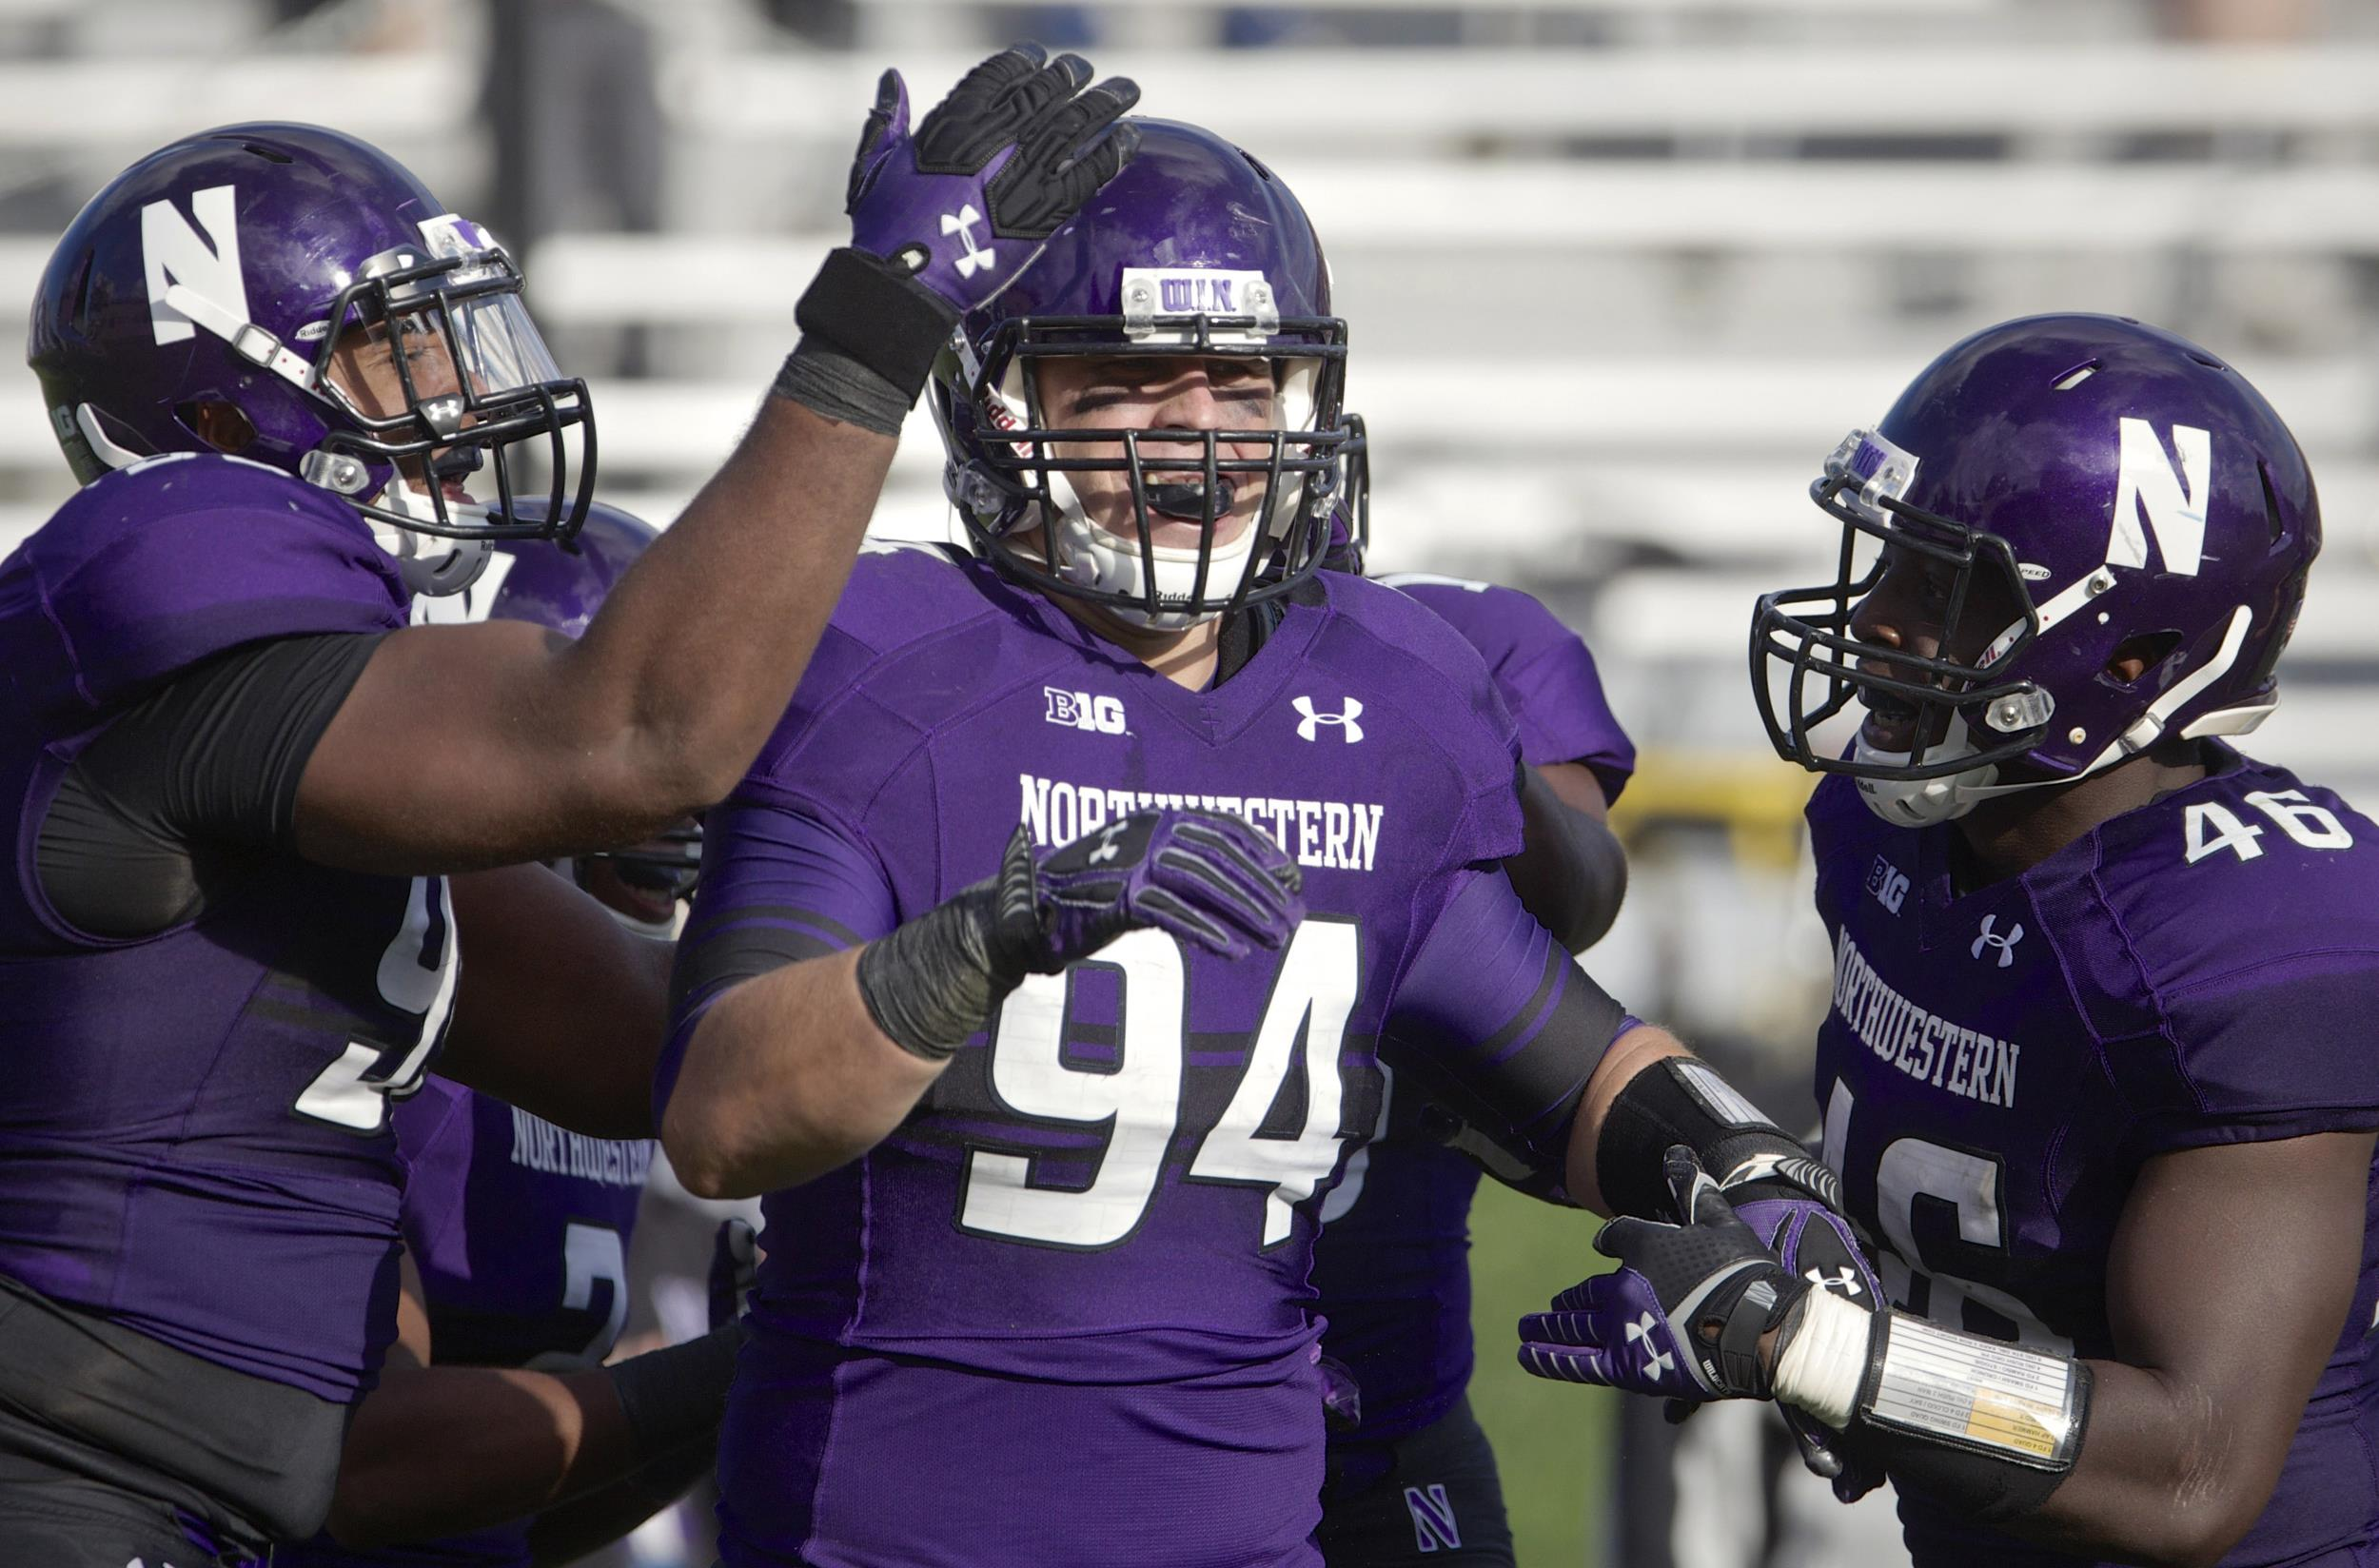 Image: Dean Lowry #94 of the Northwestern Wildcats is congratulated by teammates Chance Carter #99 and Damien Proby #46 after scoring a touchdown